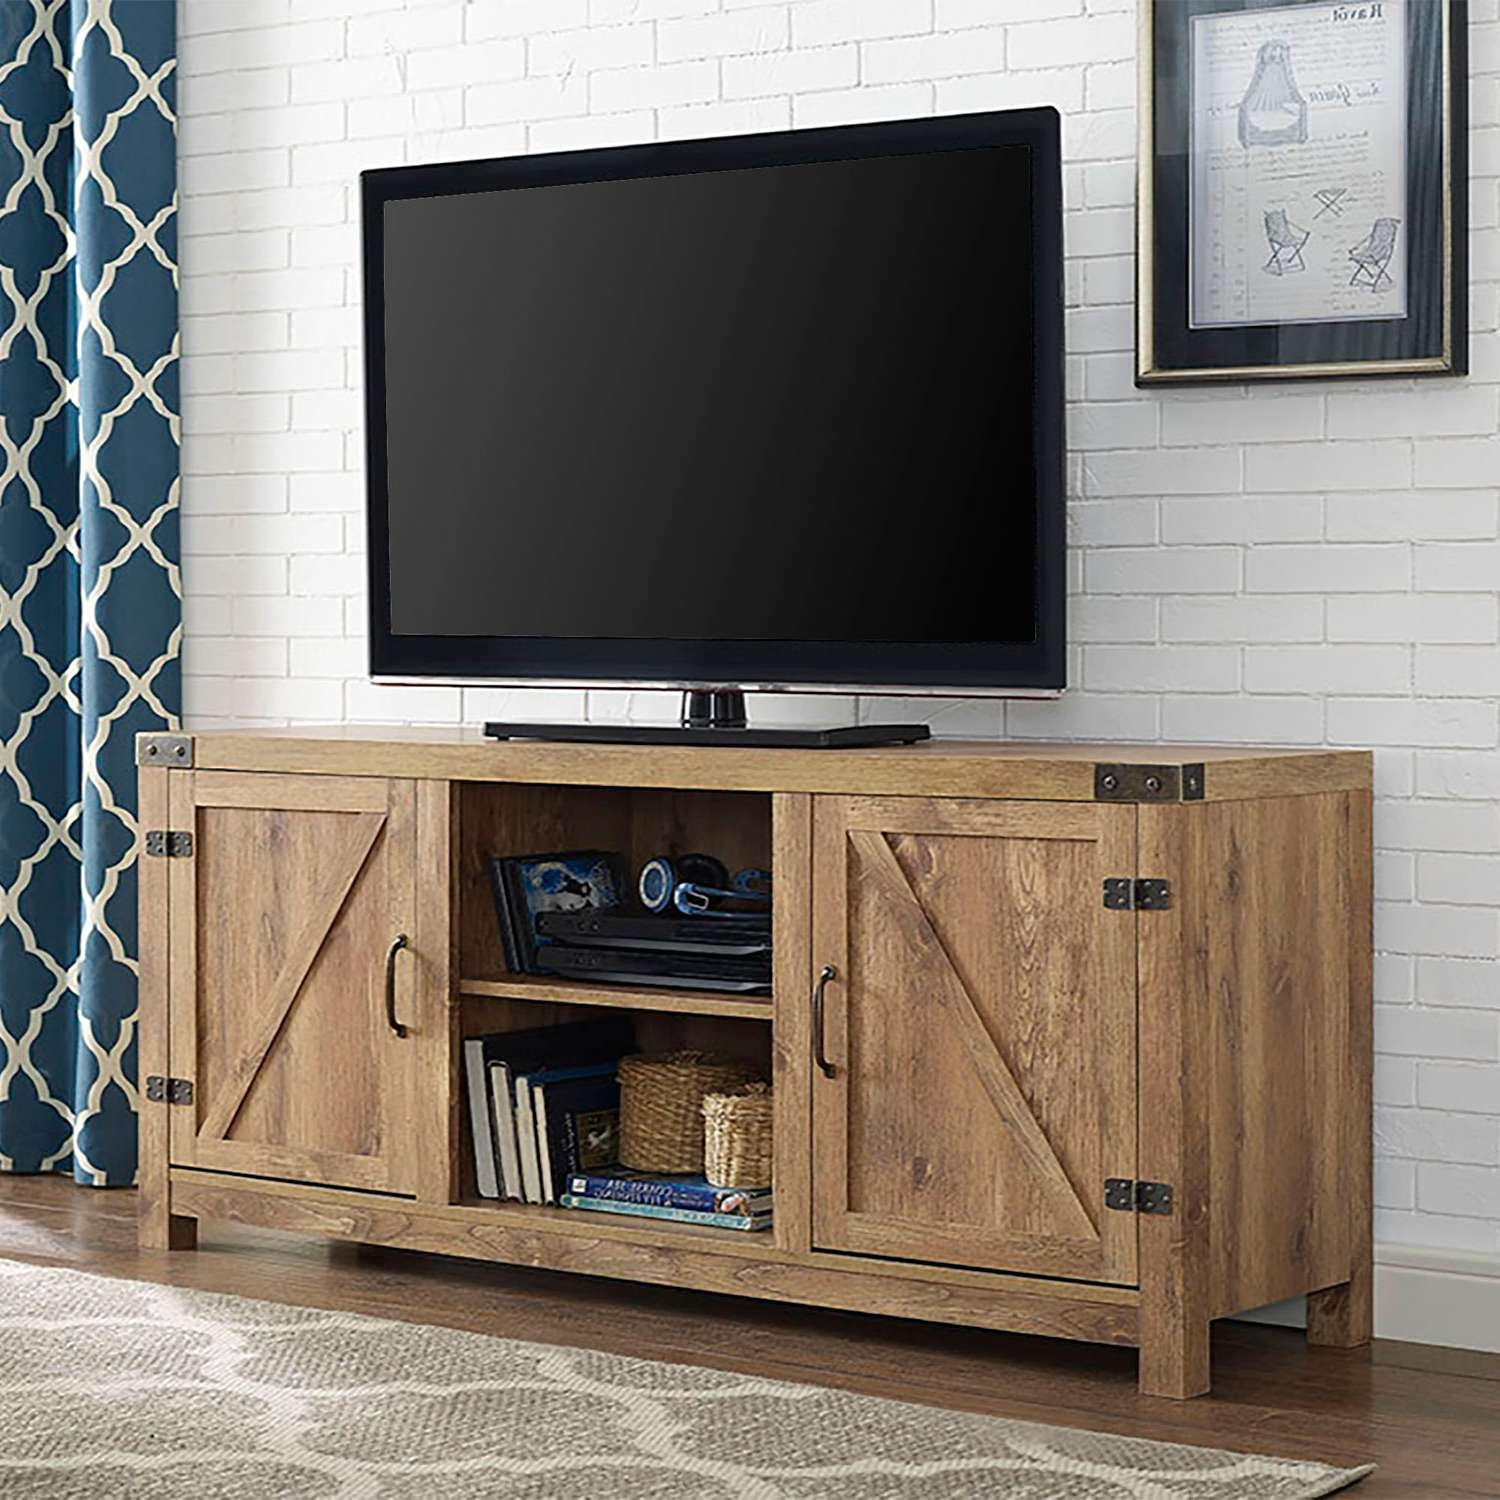 Tv Cabinet For Sale Home Design Awesome Contemporary Under Tv Regarding Under Tv Cabinets (View 12 of 20)